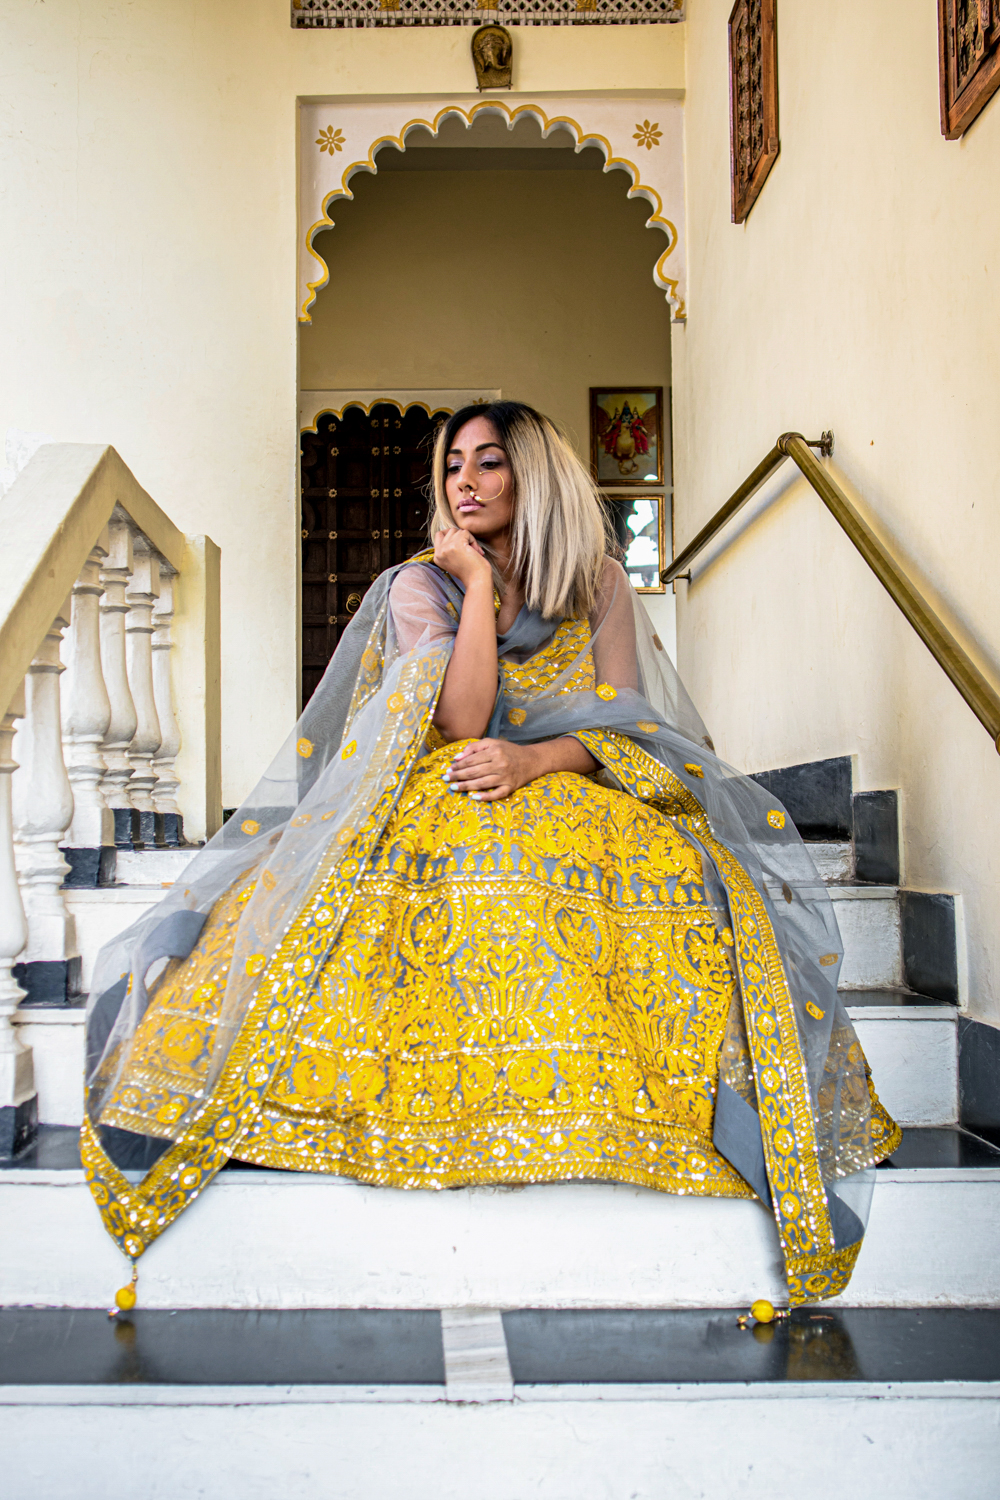 Indian Fashion ; Ethnic Outfit Editorial ; Yellow Lehenga ; Neeru's India ; Neerus's Fashion, Udaipur ; Udaipur Fashion ; City of Lakes ; Travel ; Fashion ; fashion photography ; Naznin ; Naznin Suhaer  ; indian blogger ; hyderabad fashion bloggers ; hyderabad bloggers ; hyderabad fashion blogger ; I Dress for the Applause ; Hyderabad ;